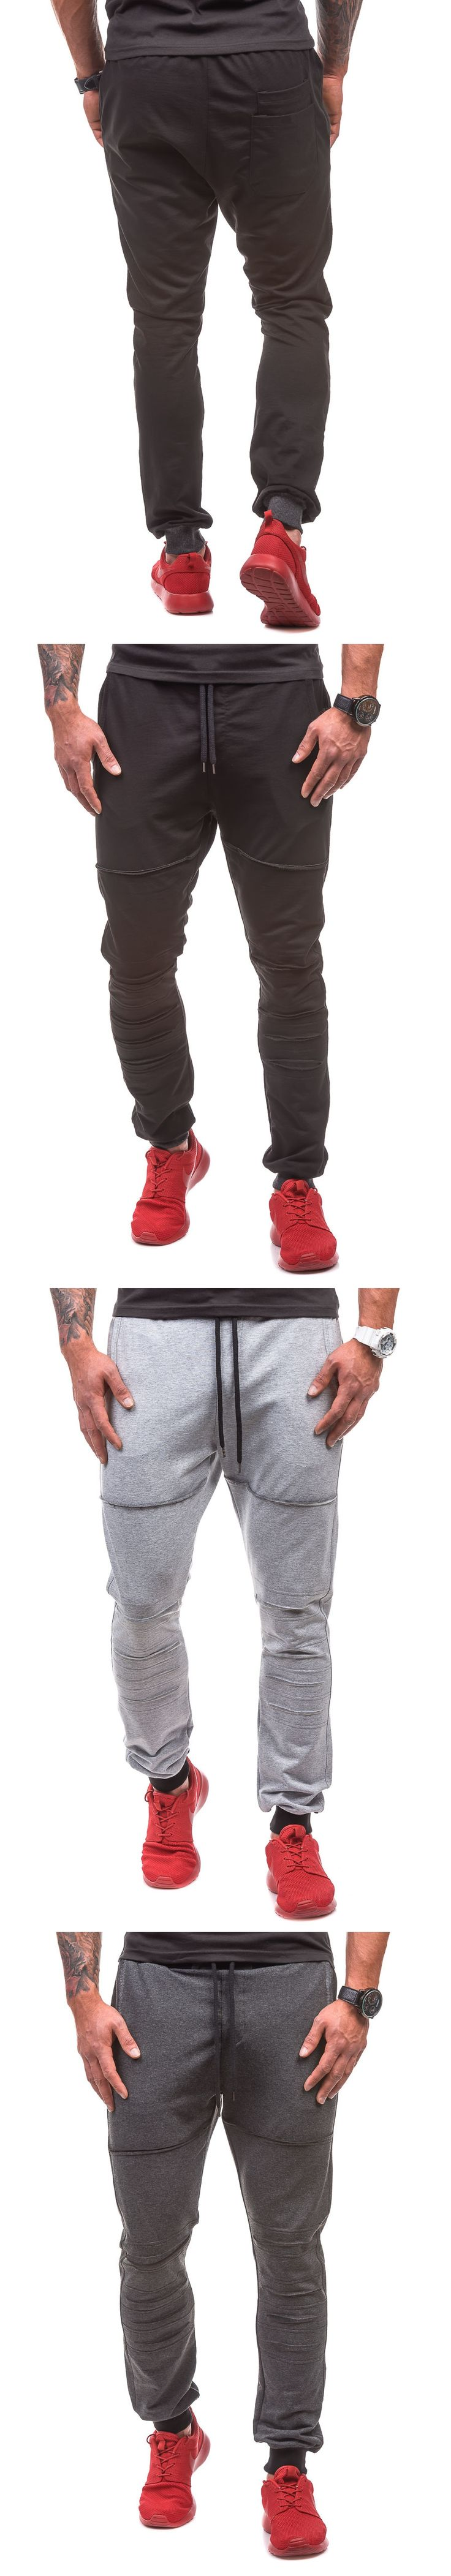 Brand Male New Fashion 2017 Slim Solid Color Ripped Men Casual Pants Man Trousers Designer Mens Joggers XXL